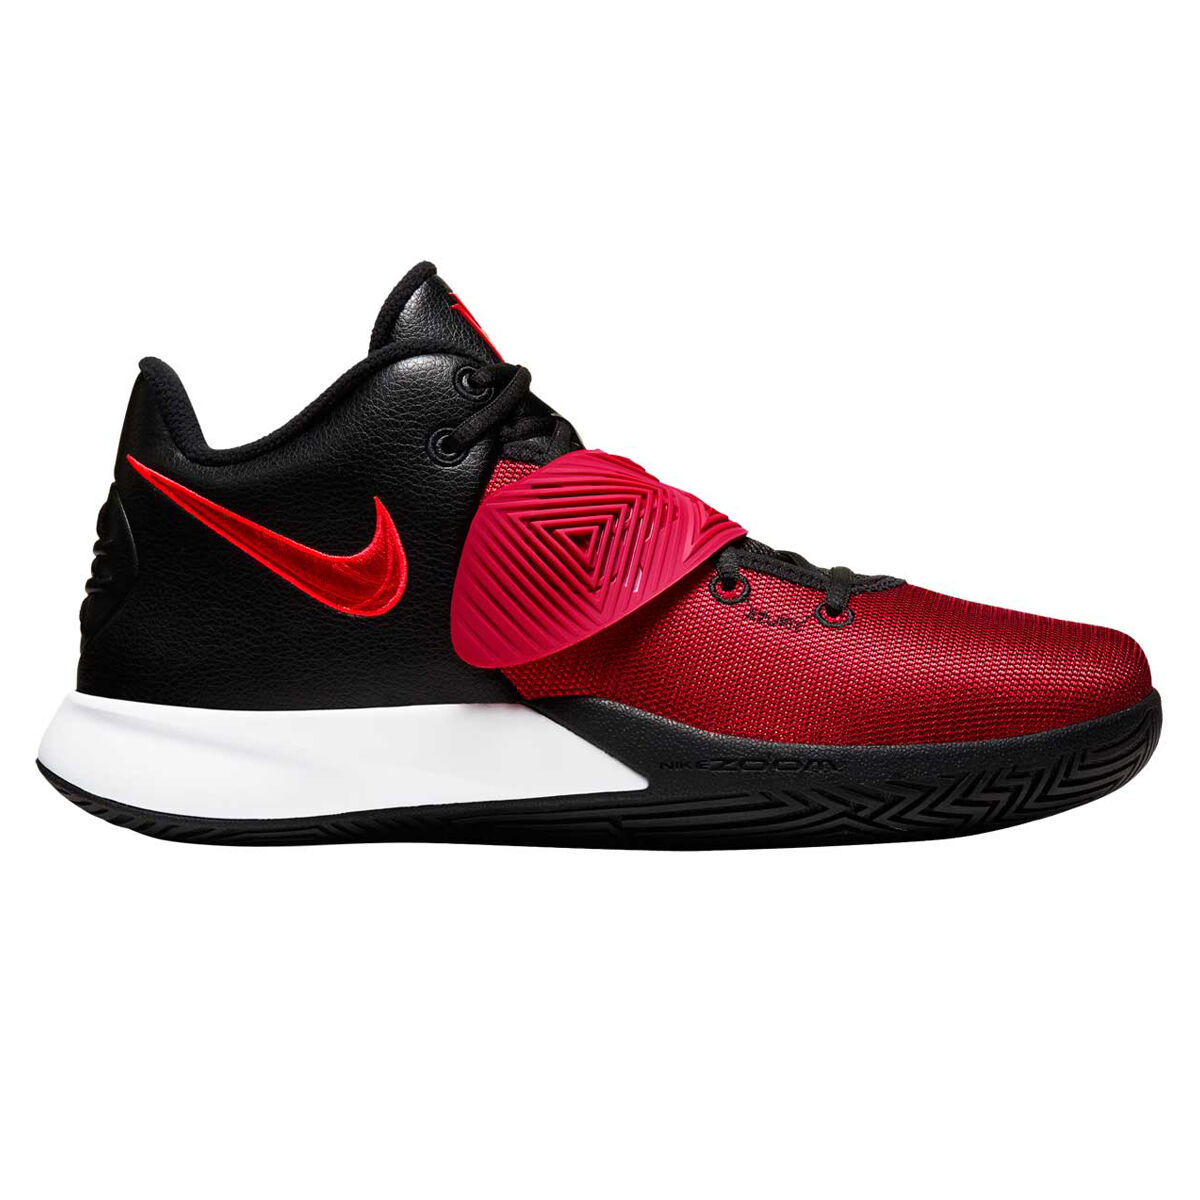 Nike Kyrie Flytrap III Mens Basketball Shoes Black Red US 9